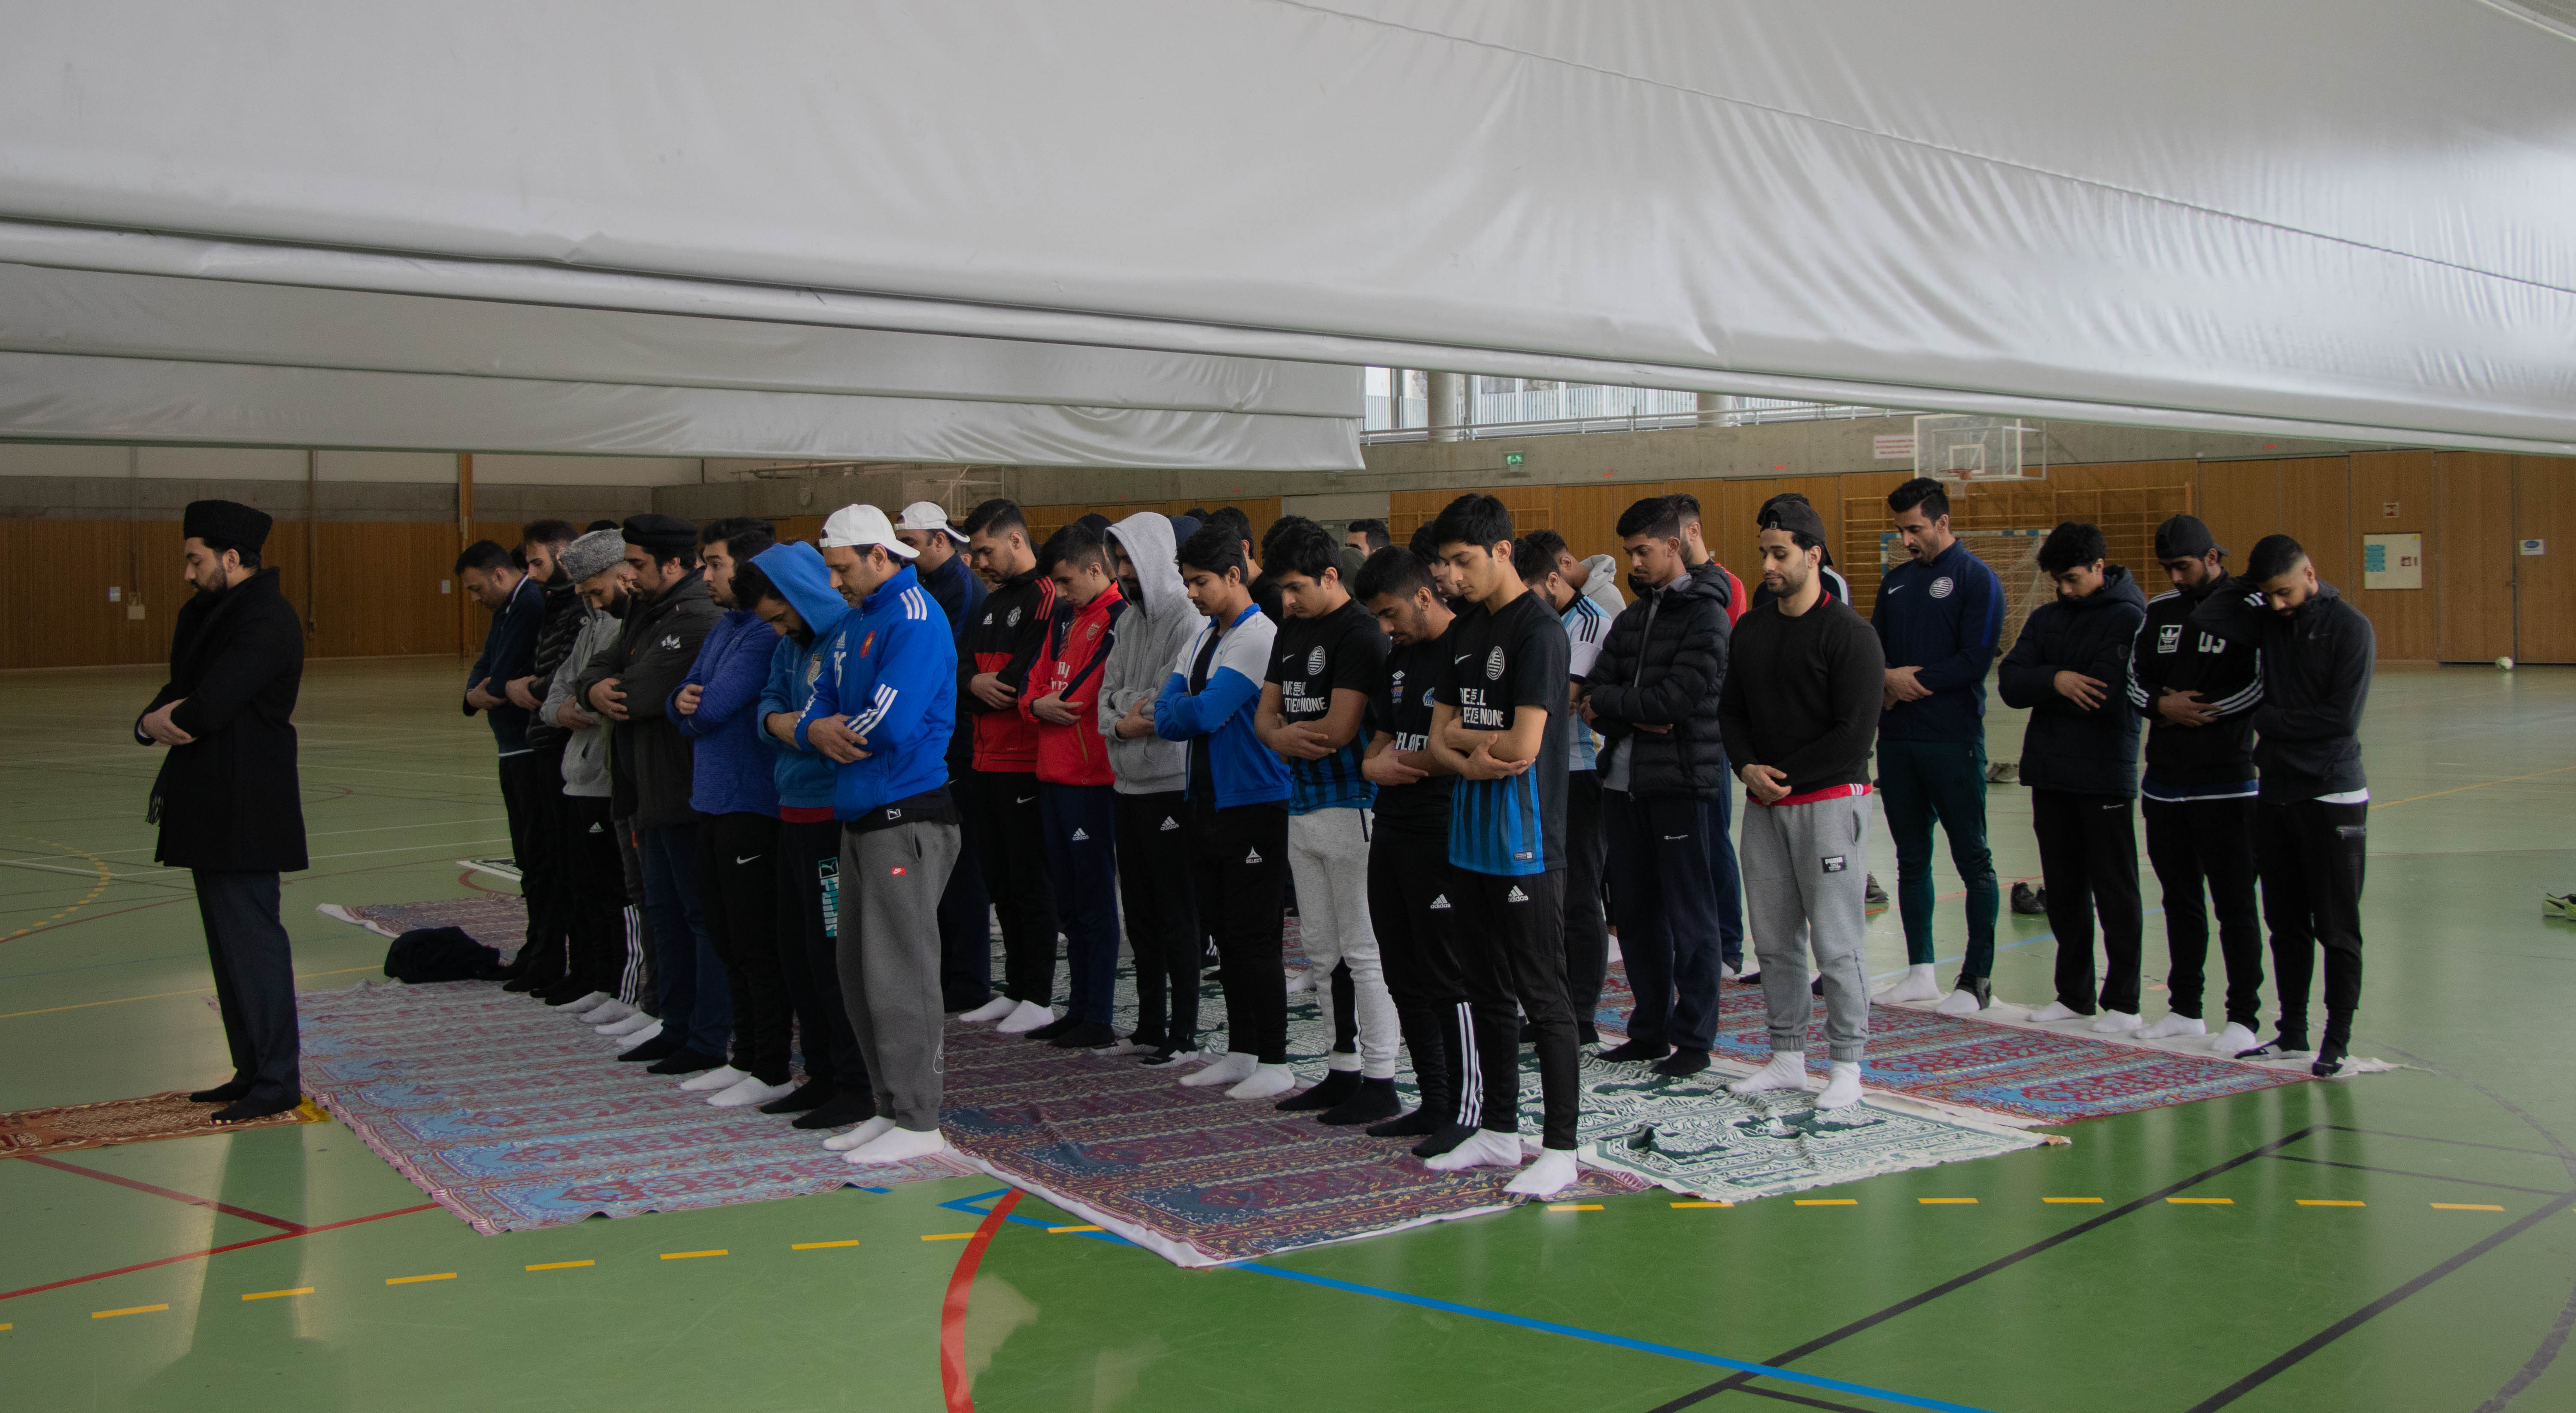 mka turnering  (9 of 15)